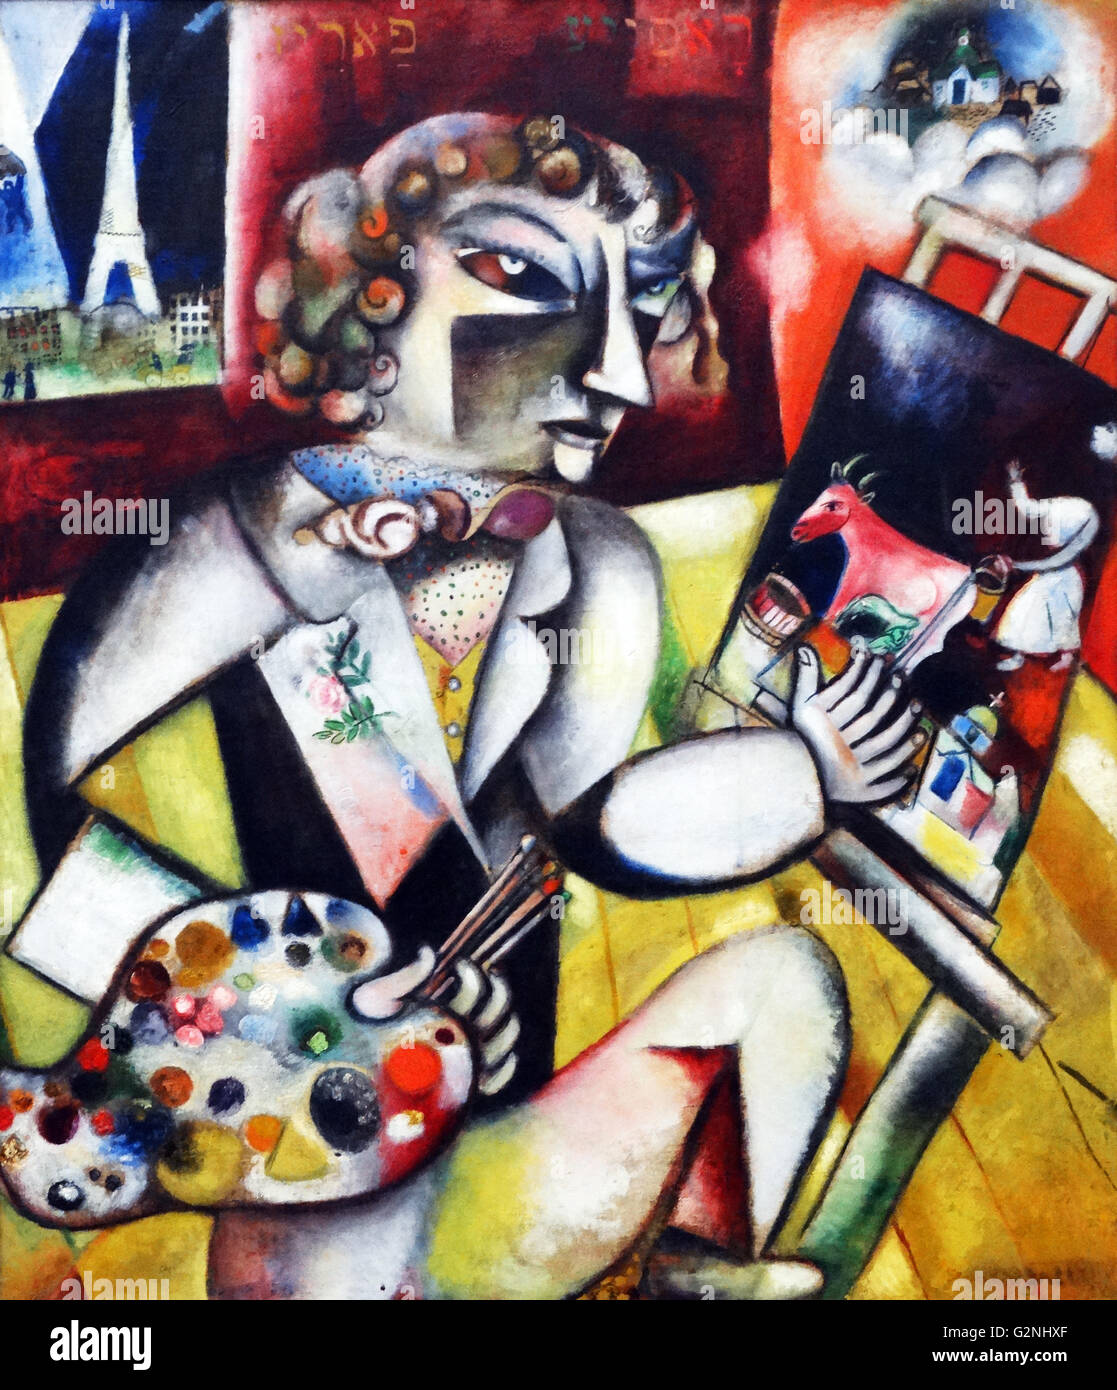 Self-portrait with Seven Fingers by Marc Chagall - Stock Image